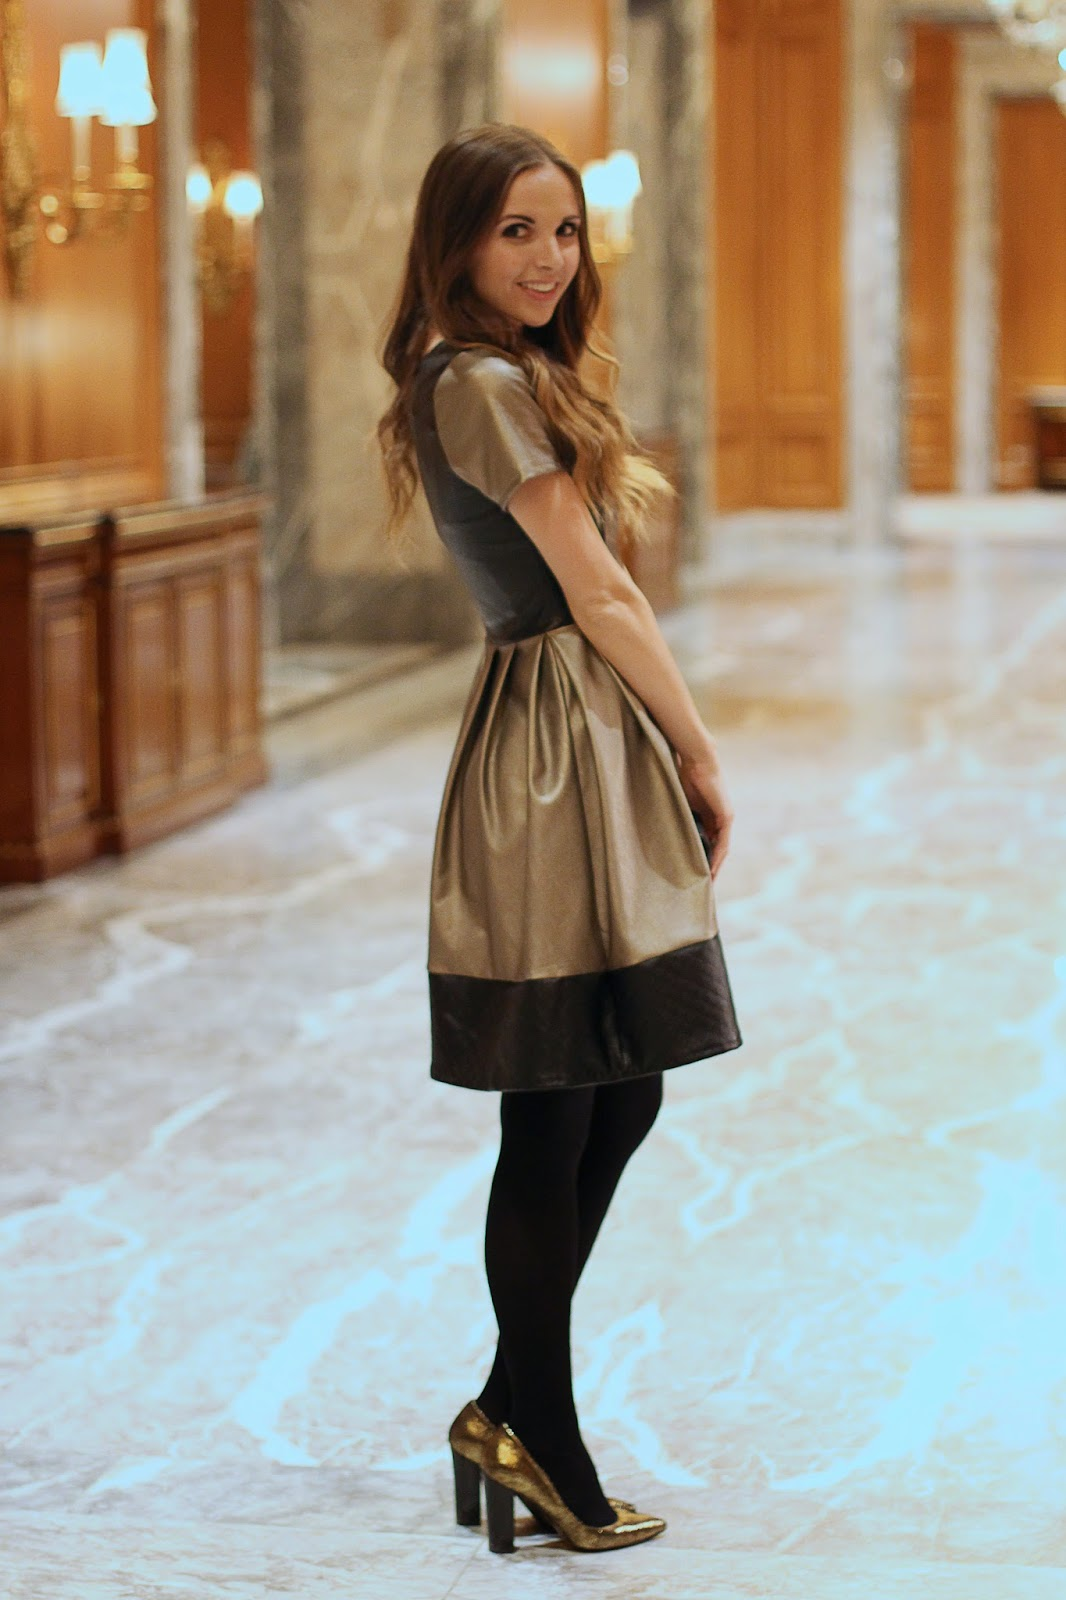 21 Jaw Dropping Dresses To Sew Hobbycraft Blog